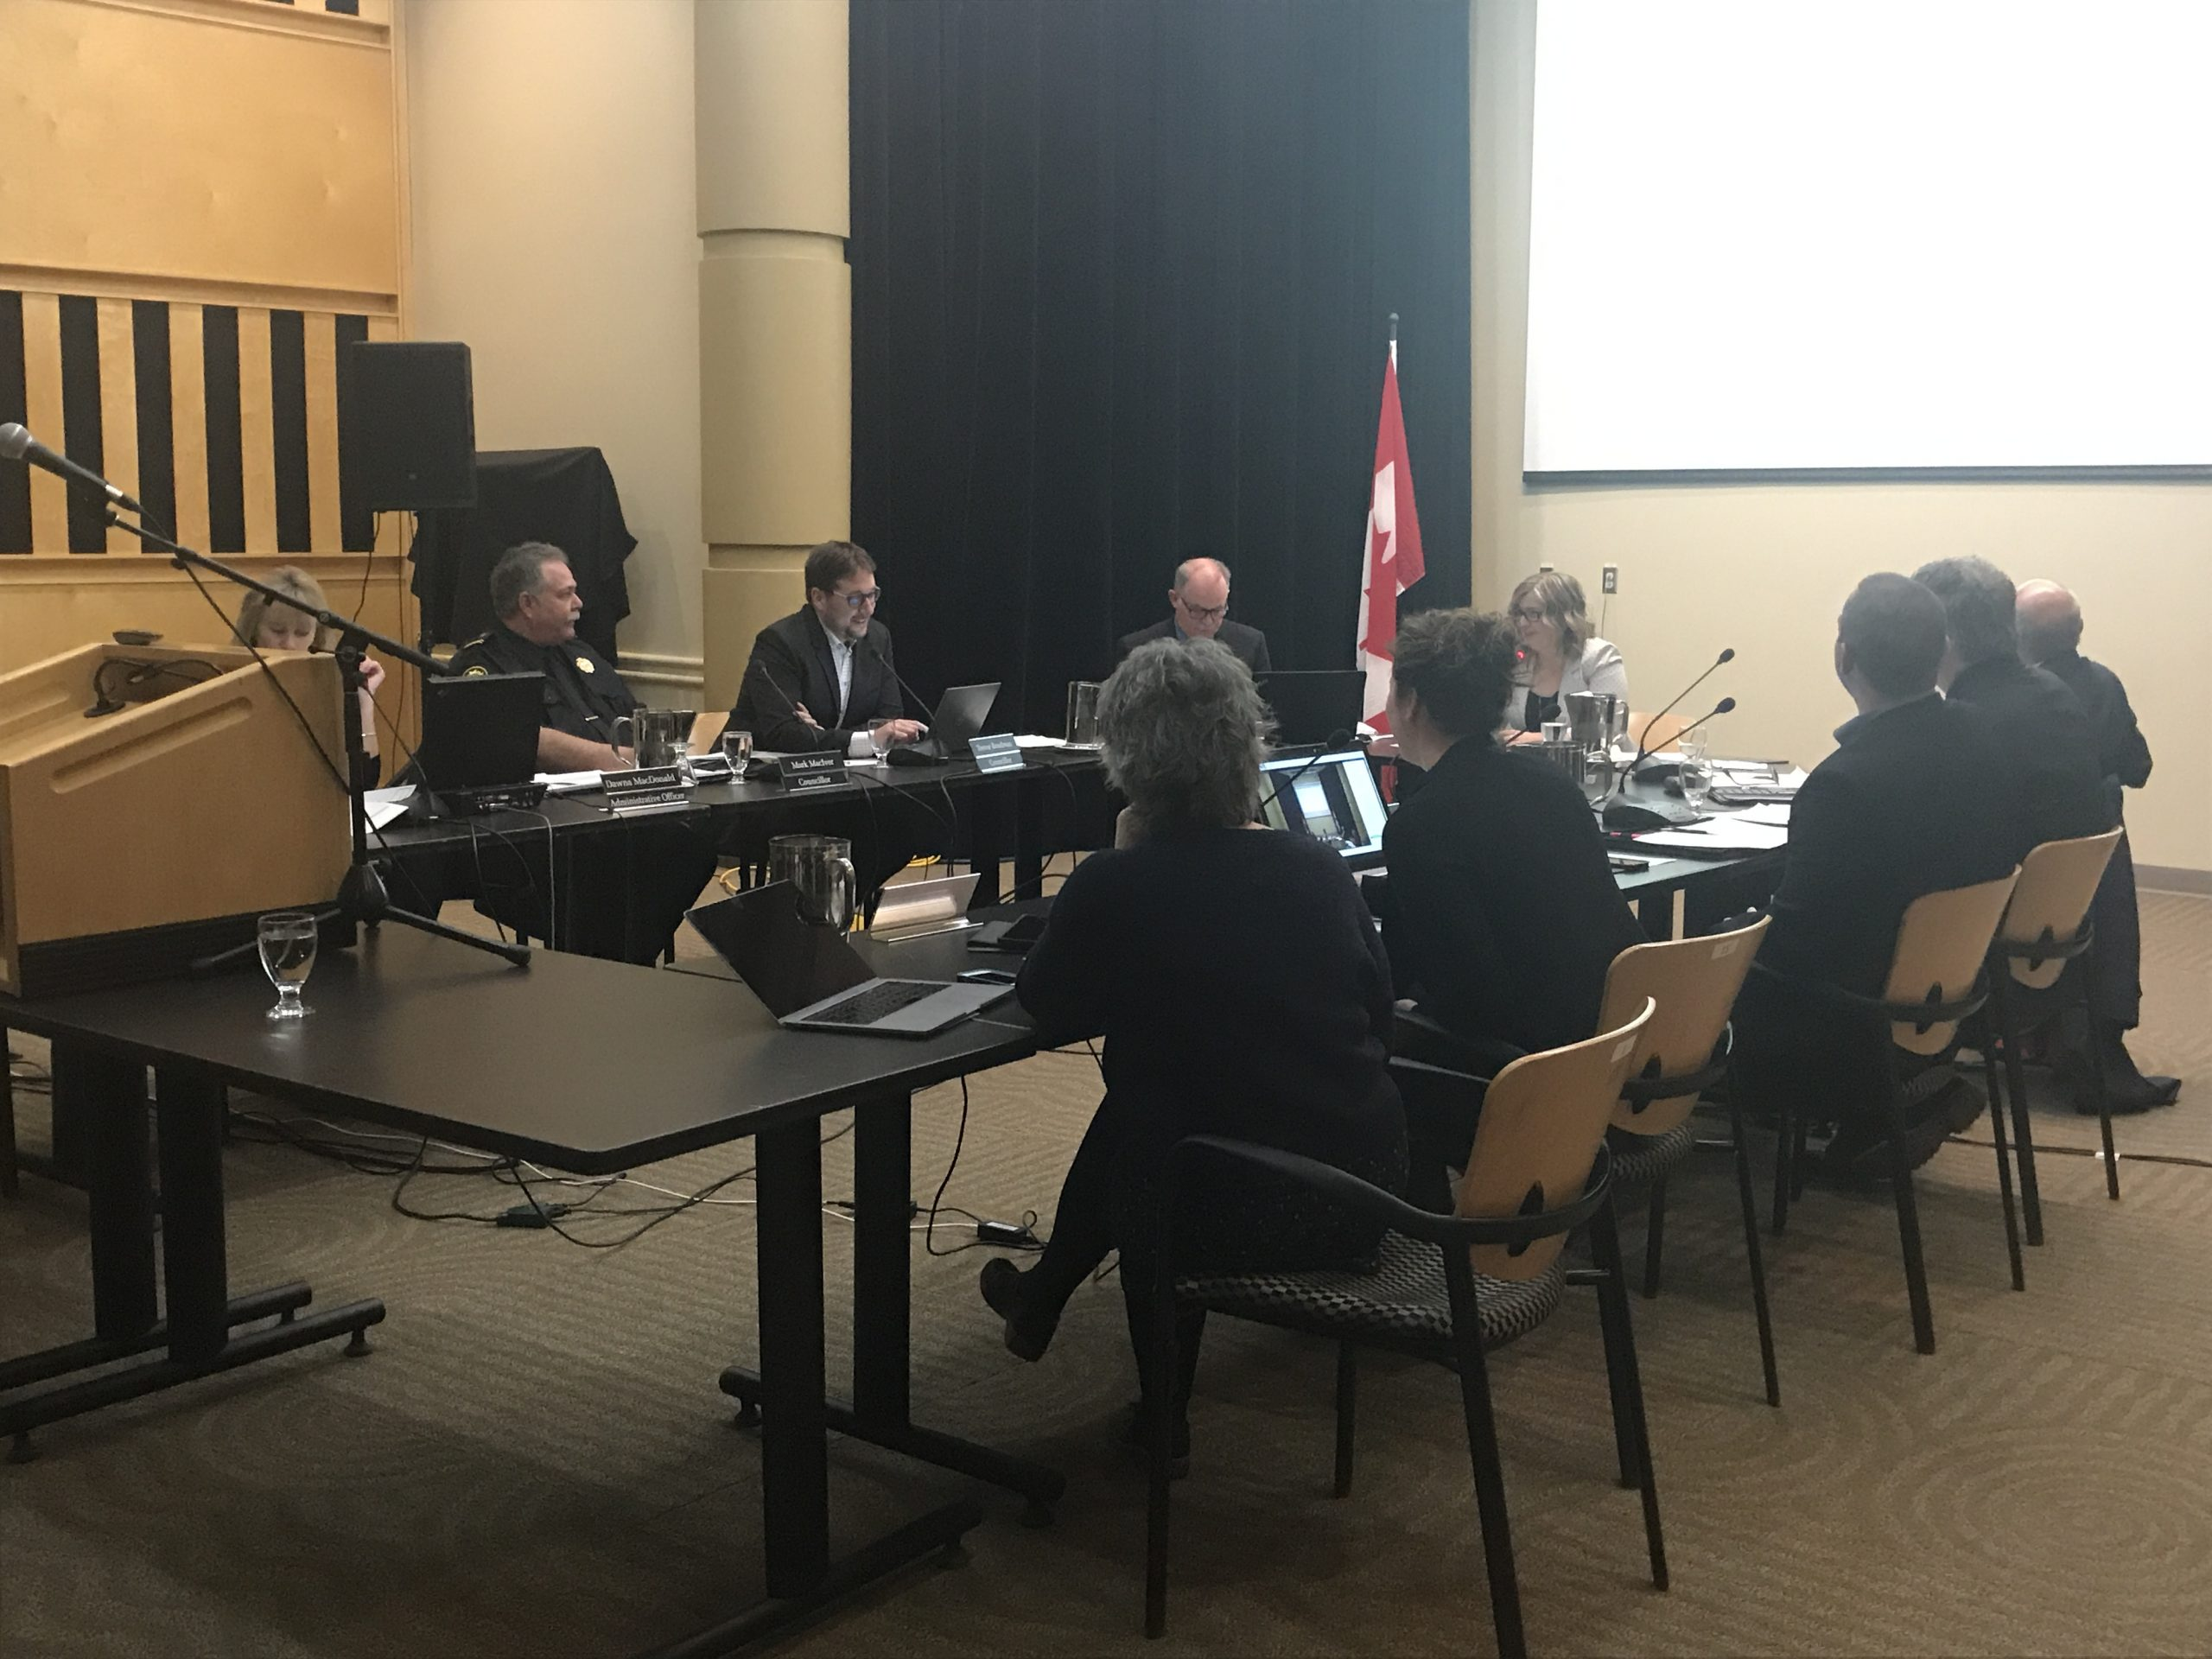 Port Hawkesbury councillors to send letter protesting Bill 85